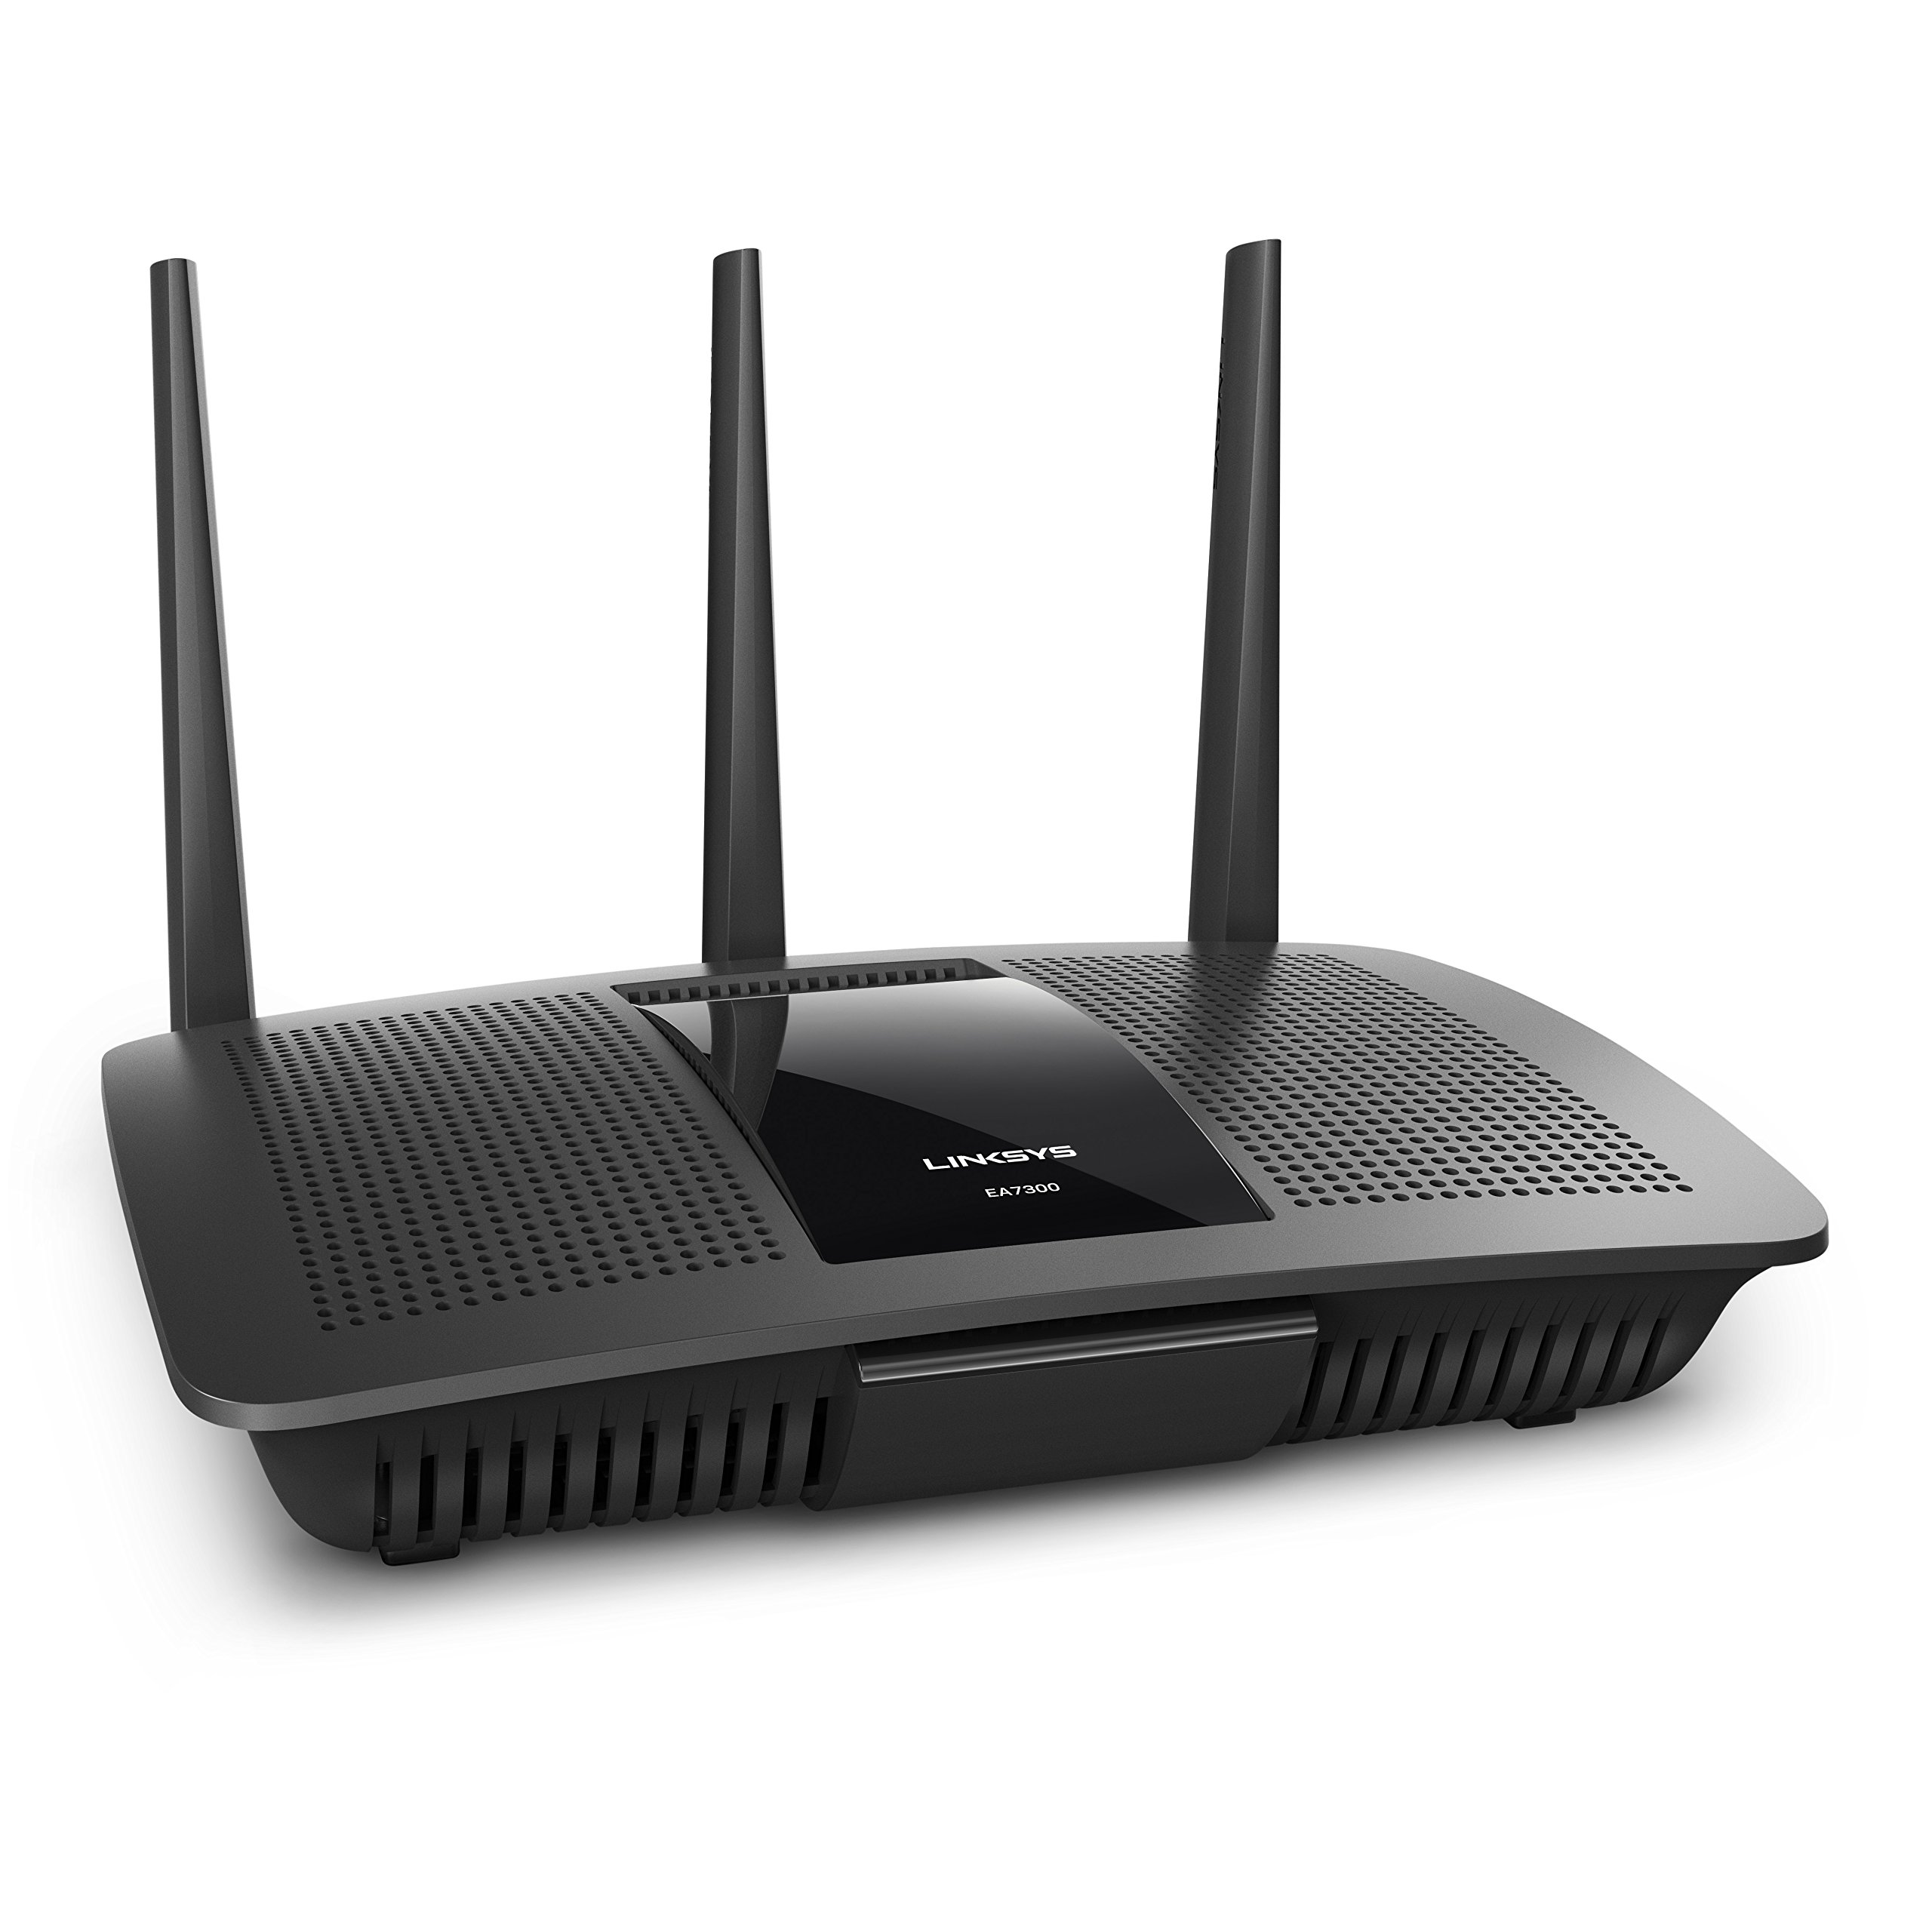 Linksys AC1750 Dual-Band Smart Wireless Router with MU-MIMO, Works with Amazon Alexa (Max Stream EA7300) by Linksys